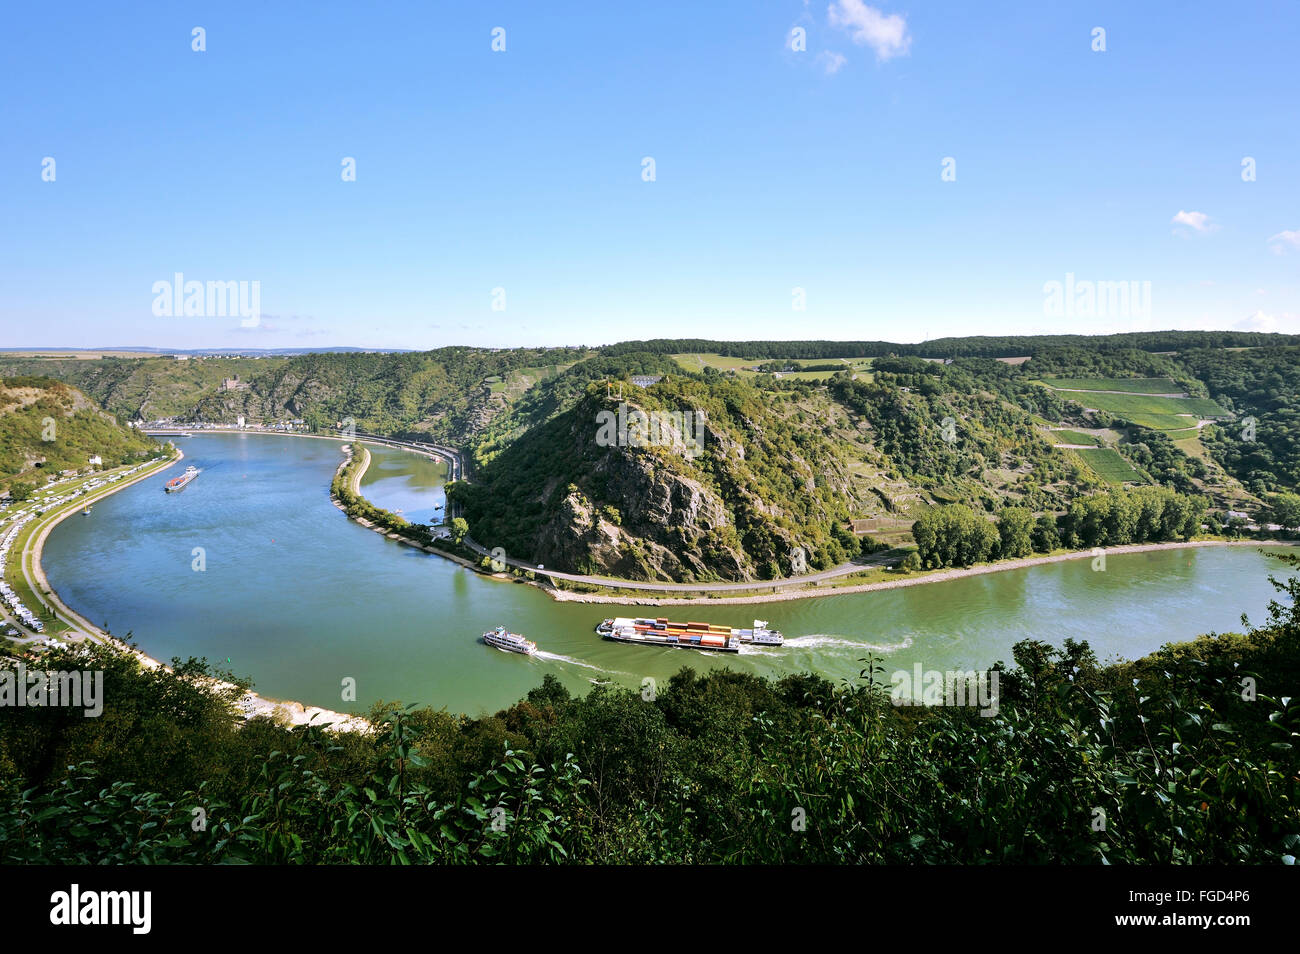 The loop of the river Rhine around the rock of Lorelei, Lorelei view, Upper Middle Rhine Valley, Germany Stock Photo